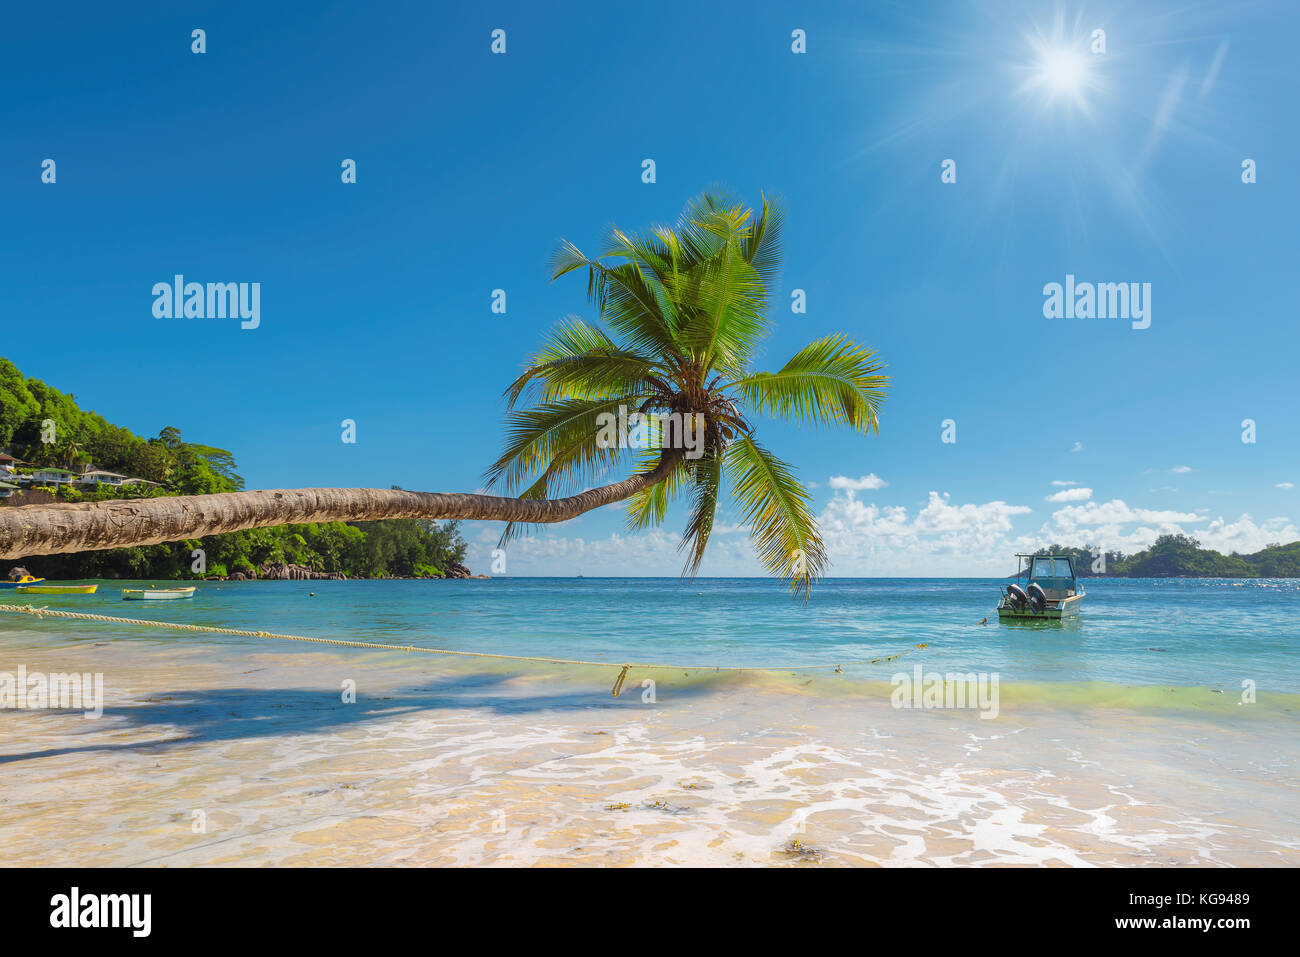 Palm tree over beautiful beach on tropical island - Stock Image